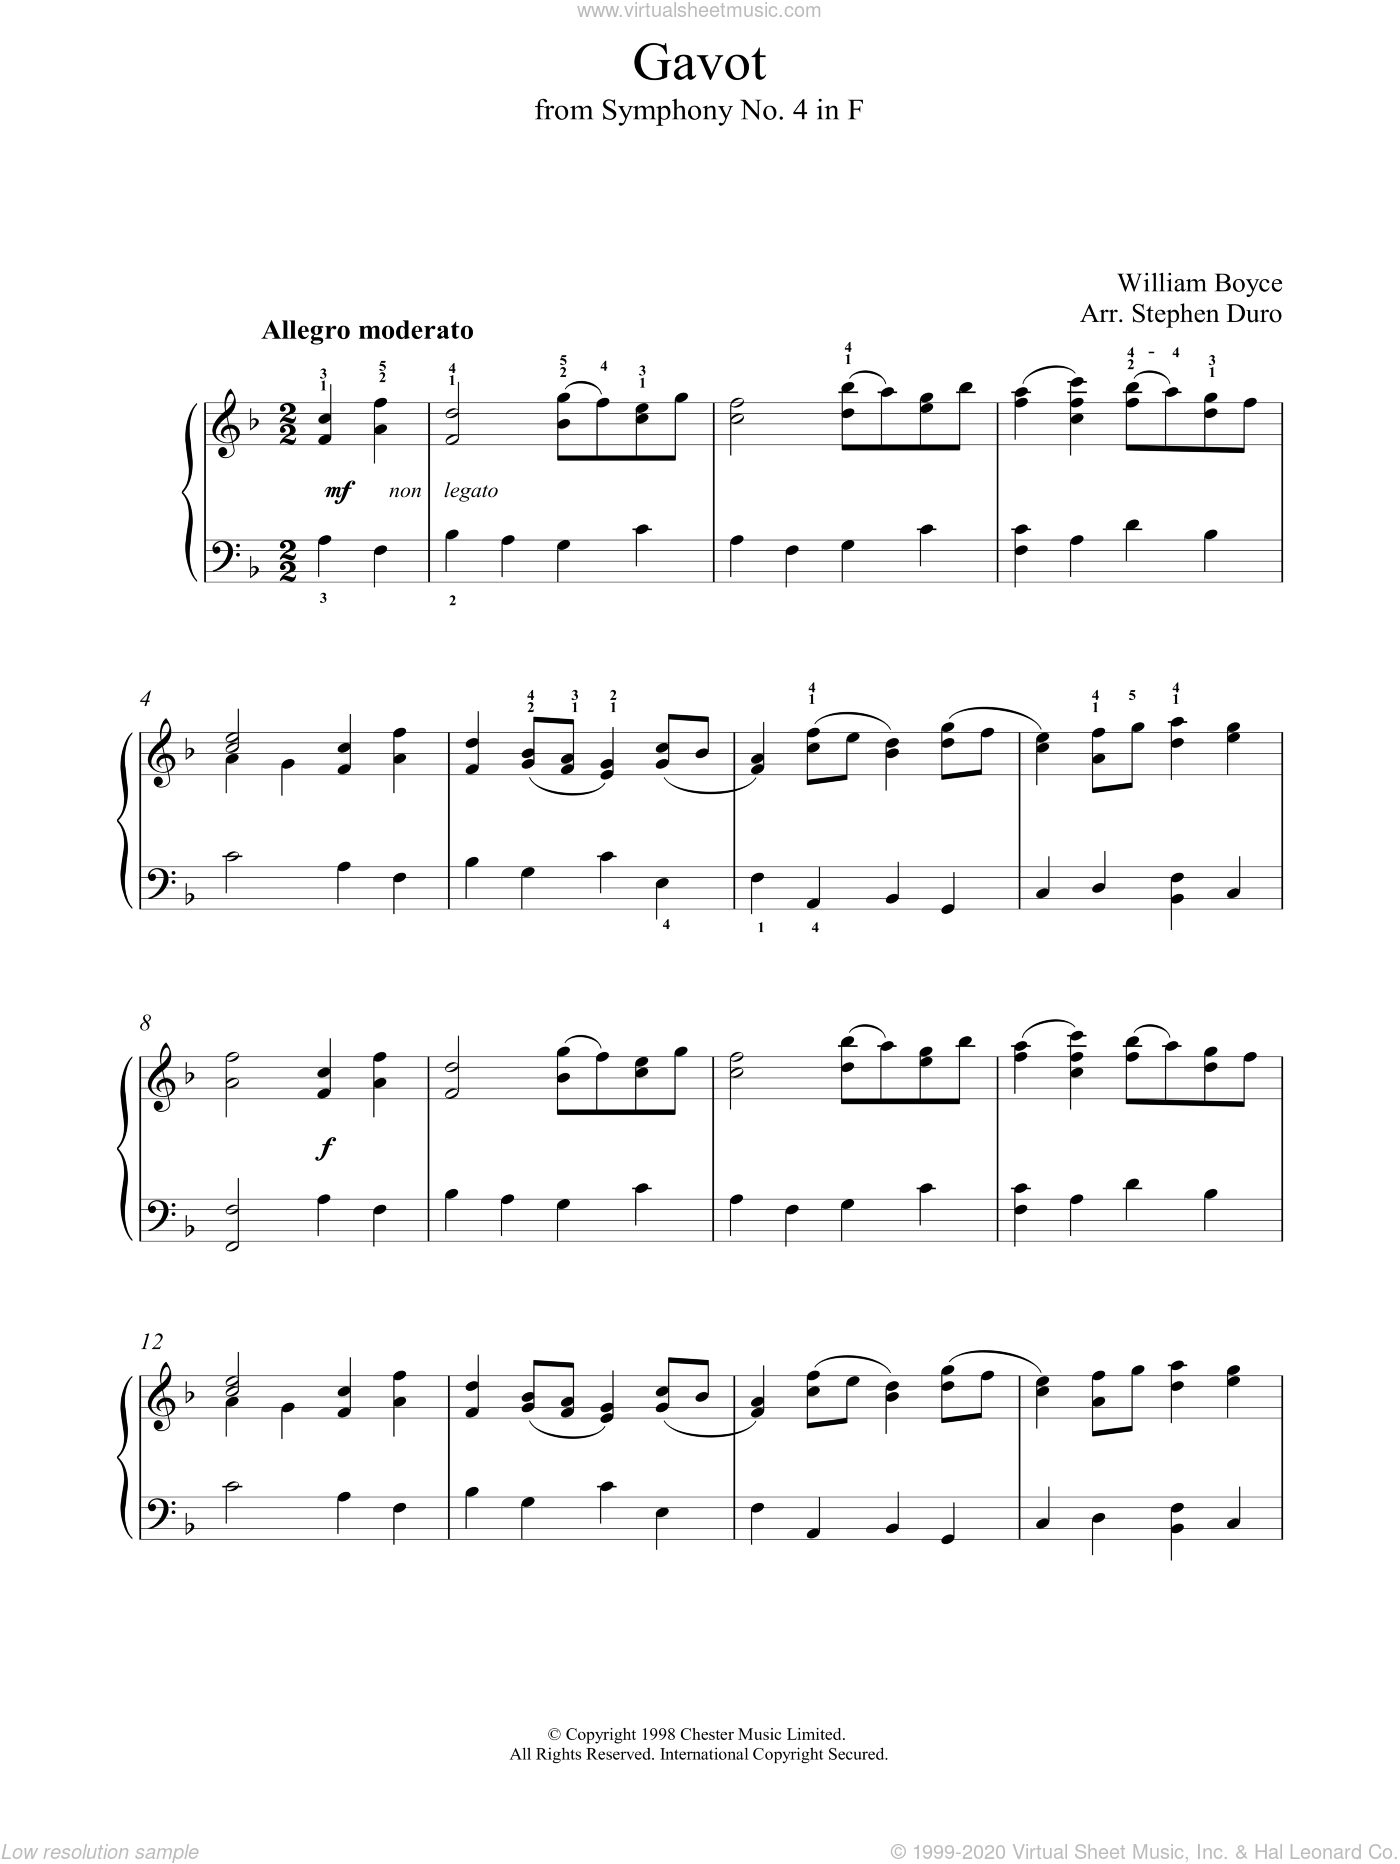 Gavot sheet music for voice, piano or guitar by William Boyce. Score Image Preview.